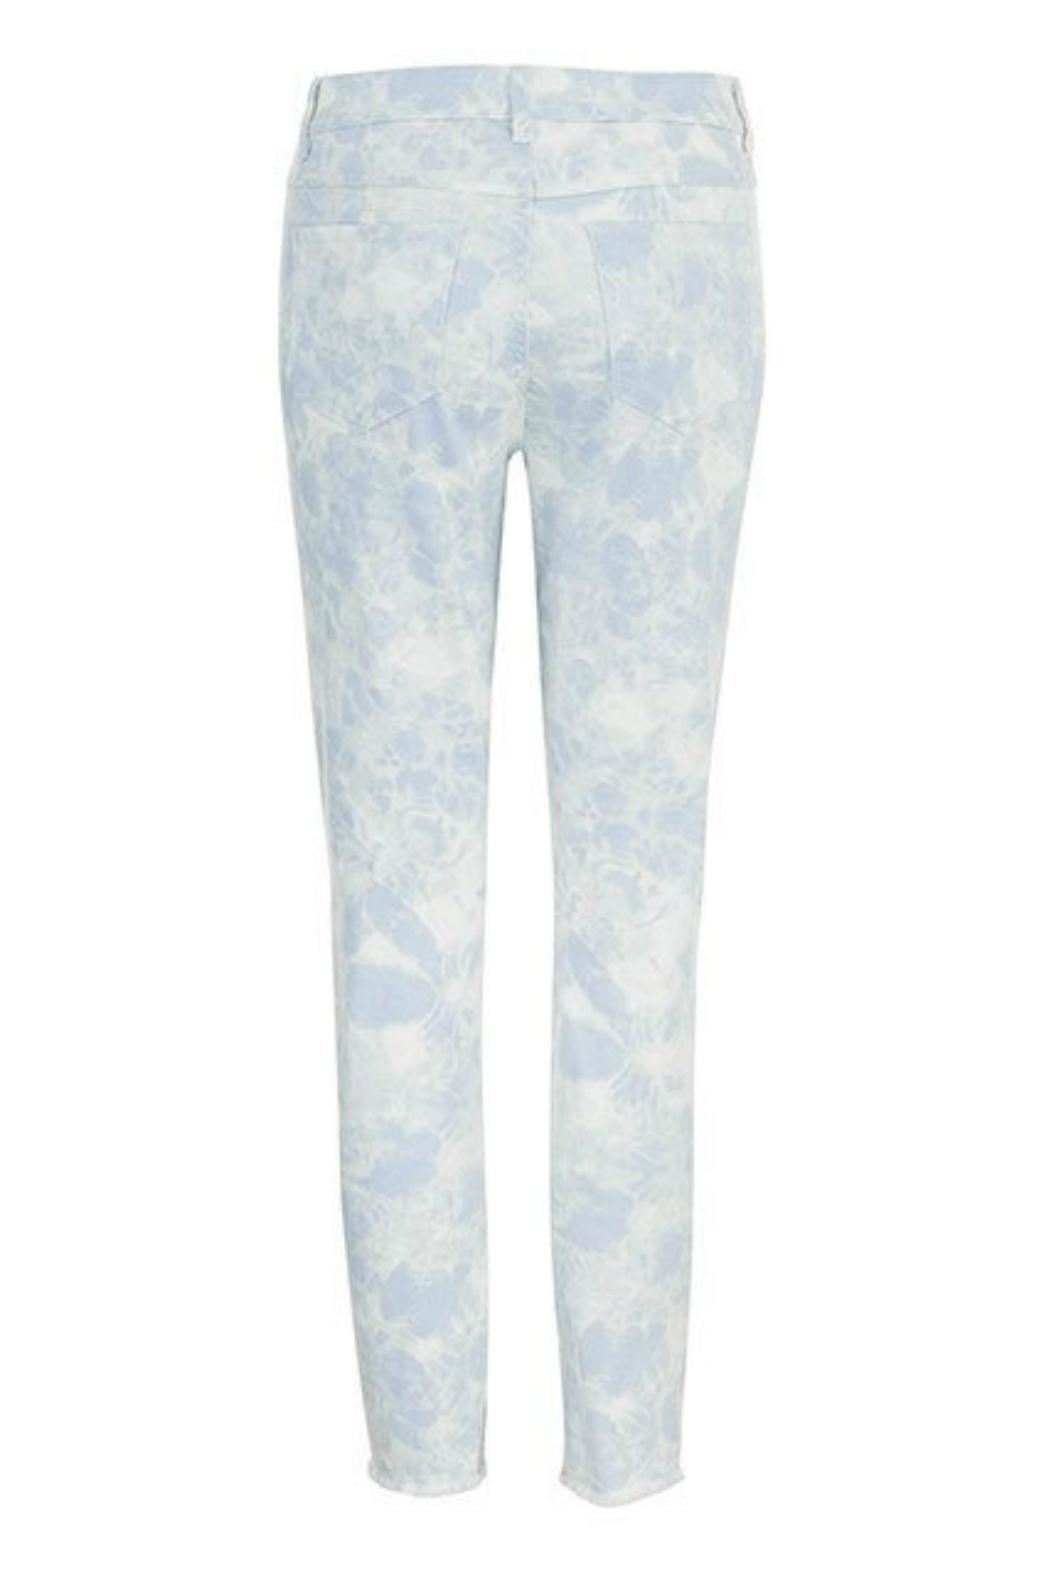 Tribal Jeans Frayed Bottom Jeans - Front Full Image